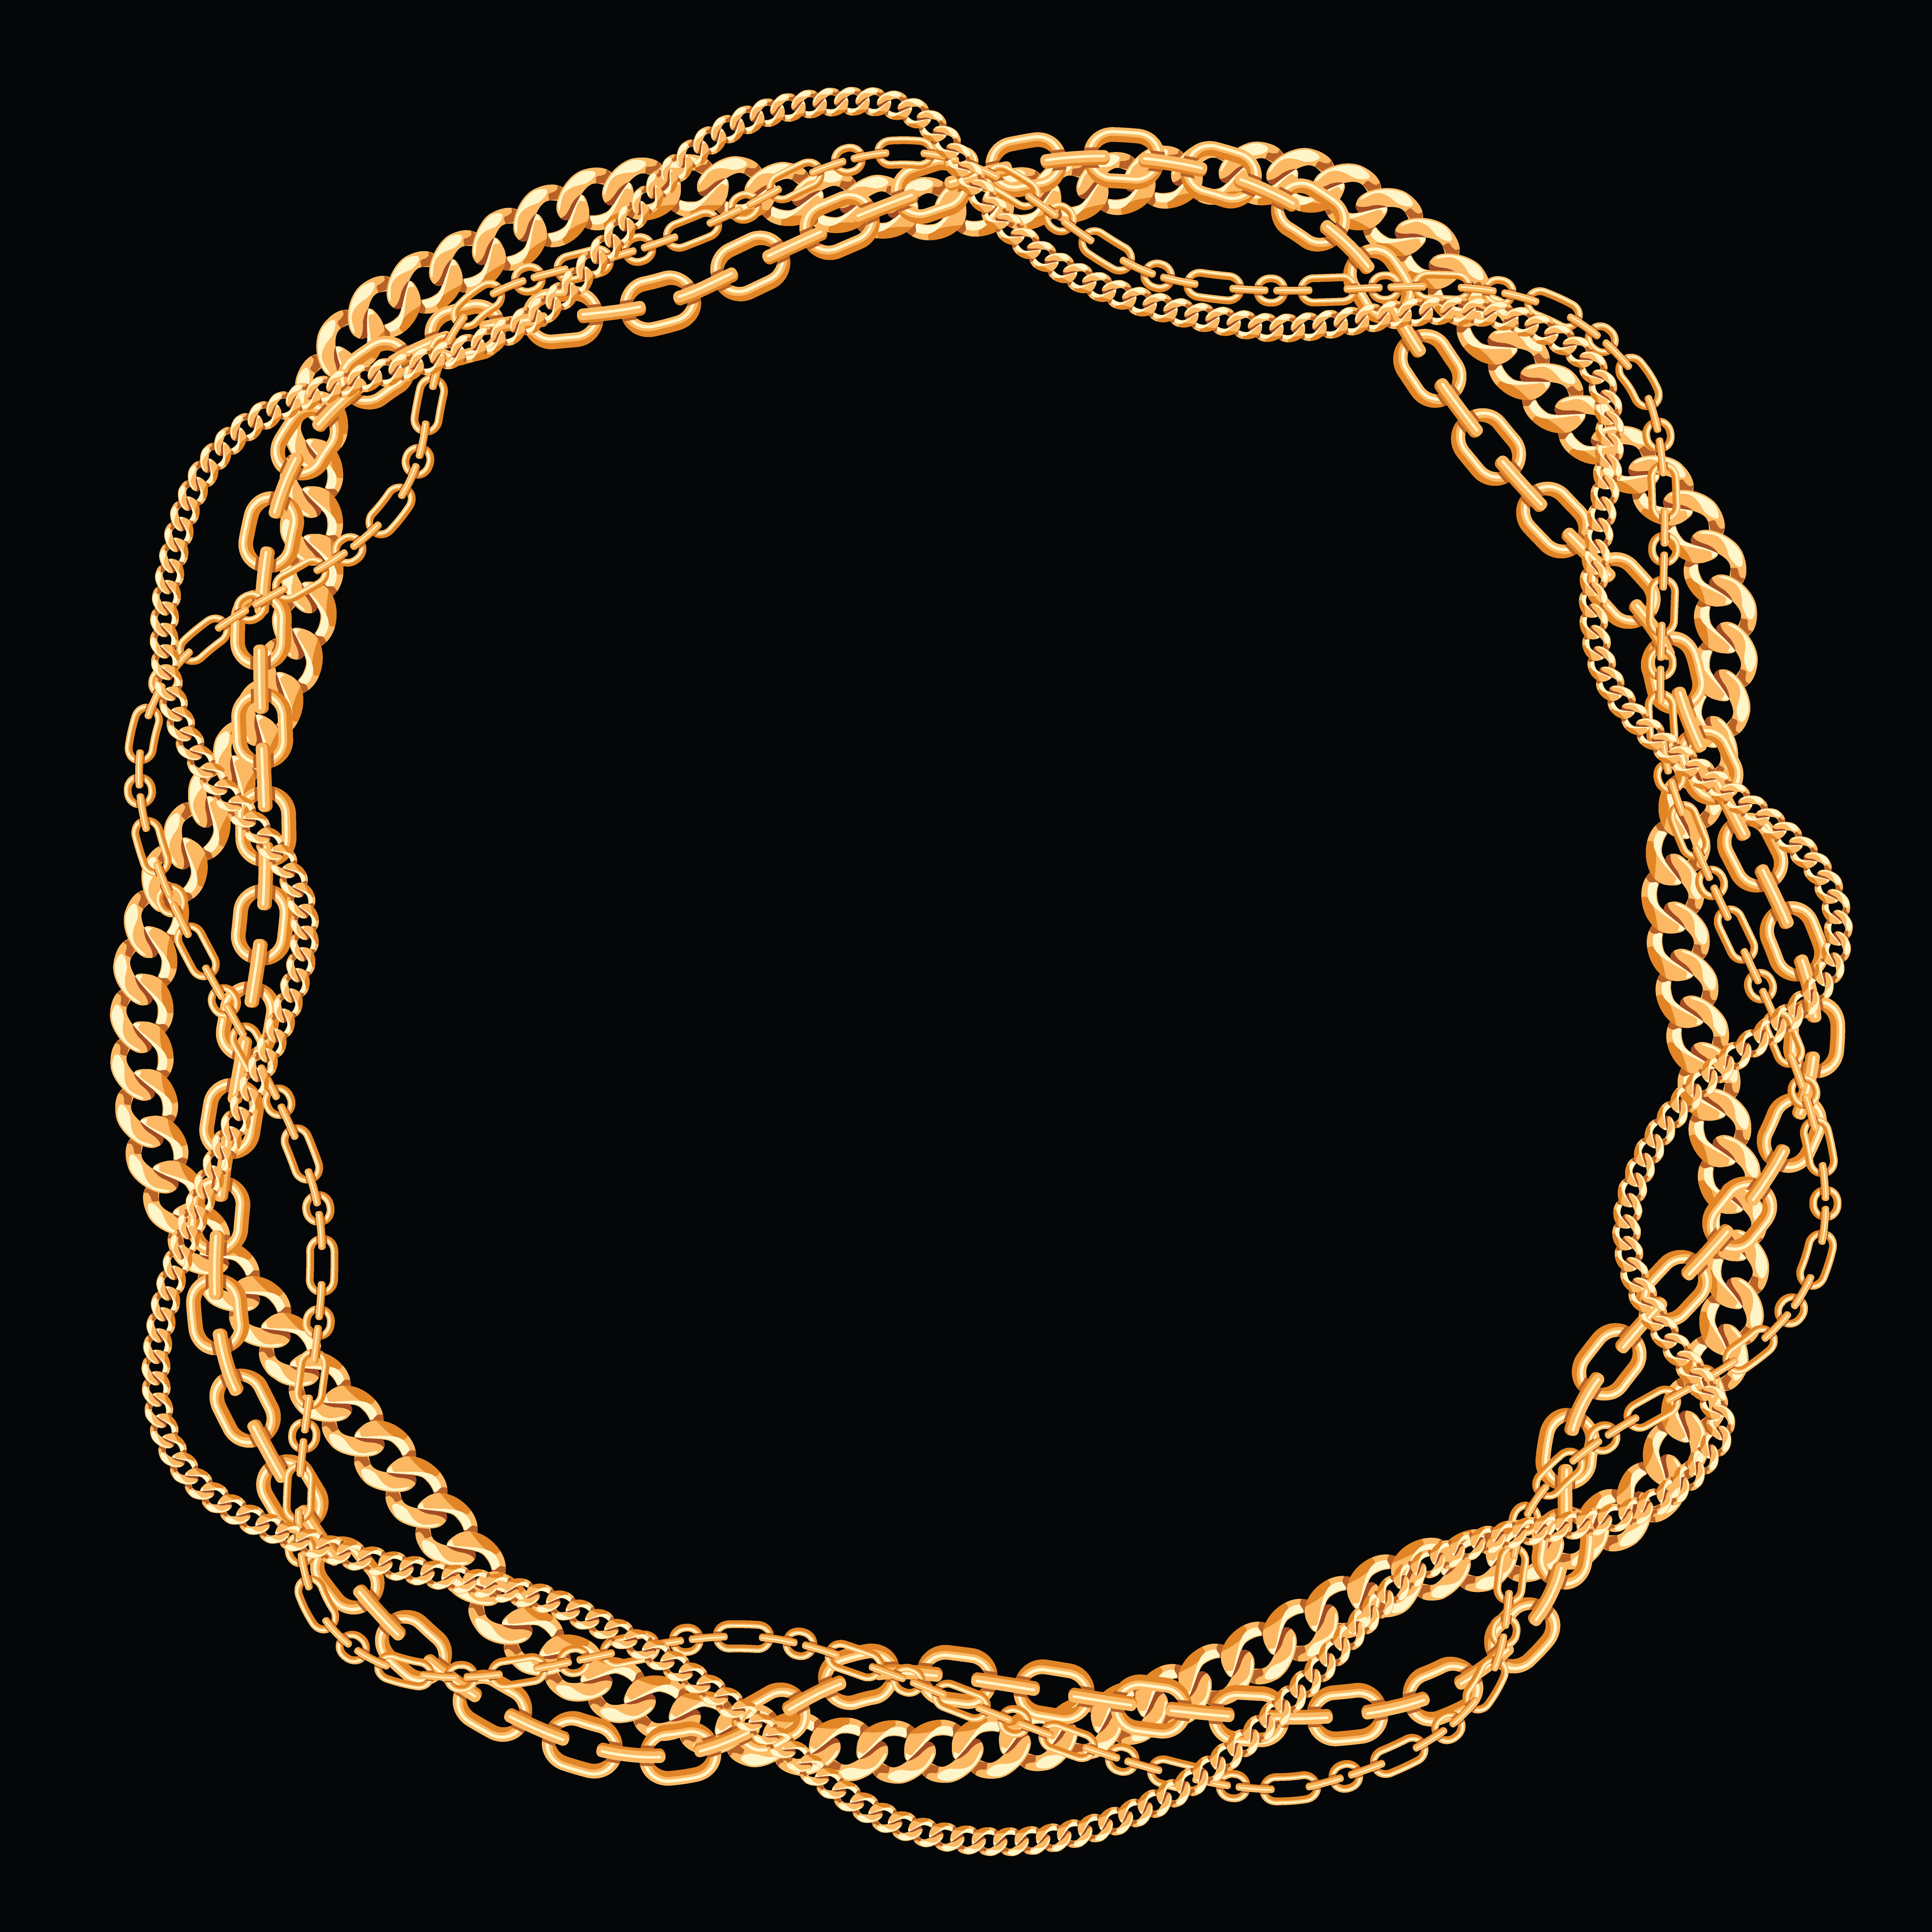 Round frame made with twisted golden chains. On black ...  Chain Vector